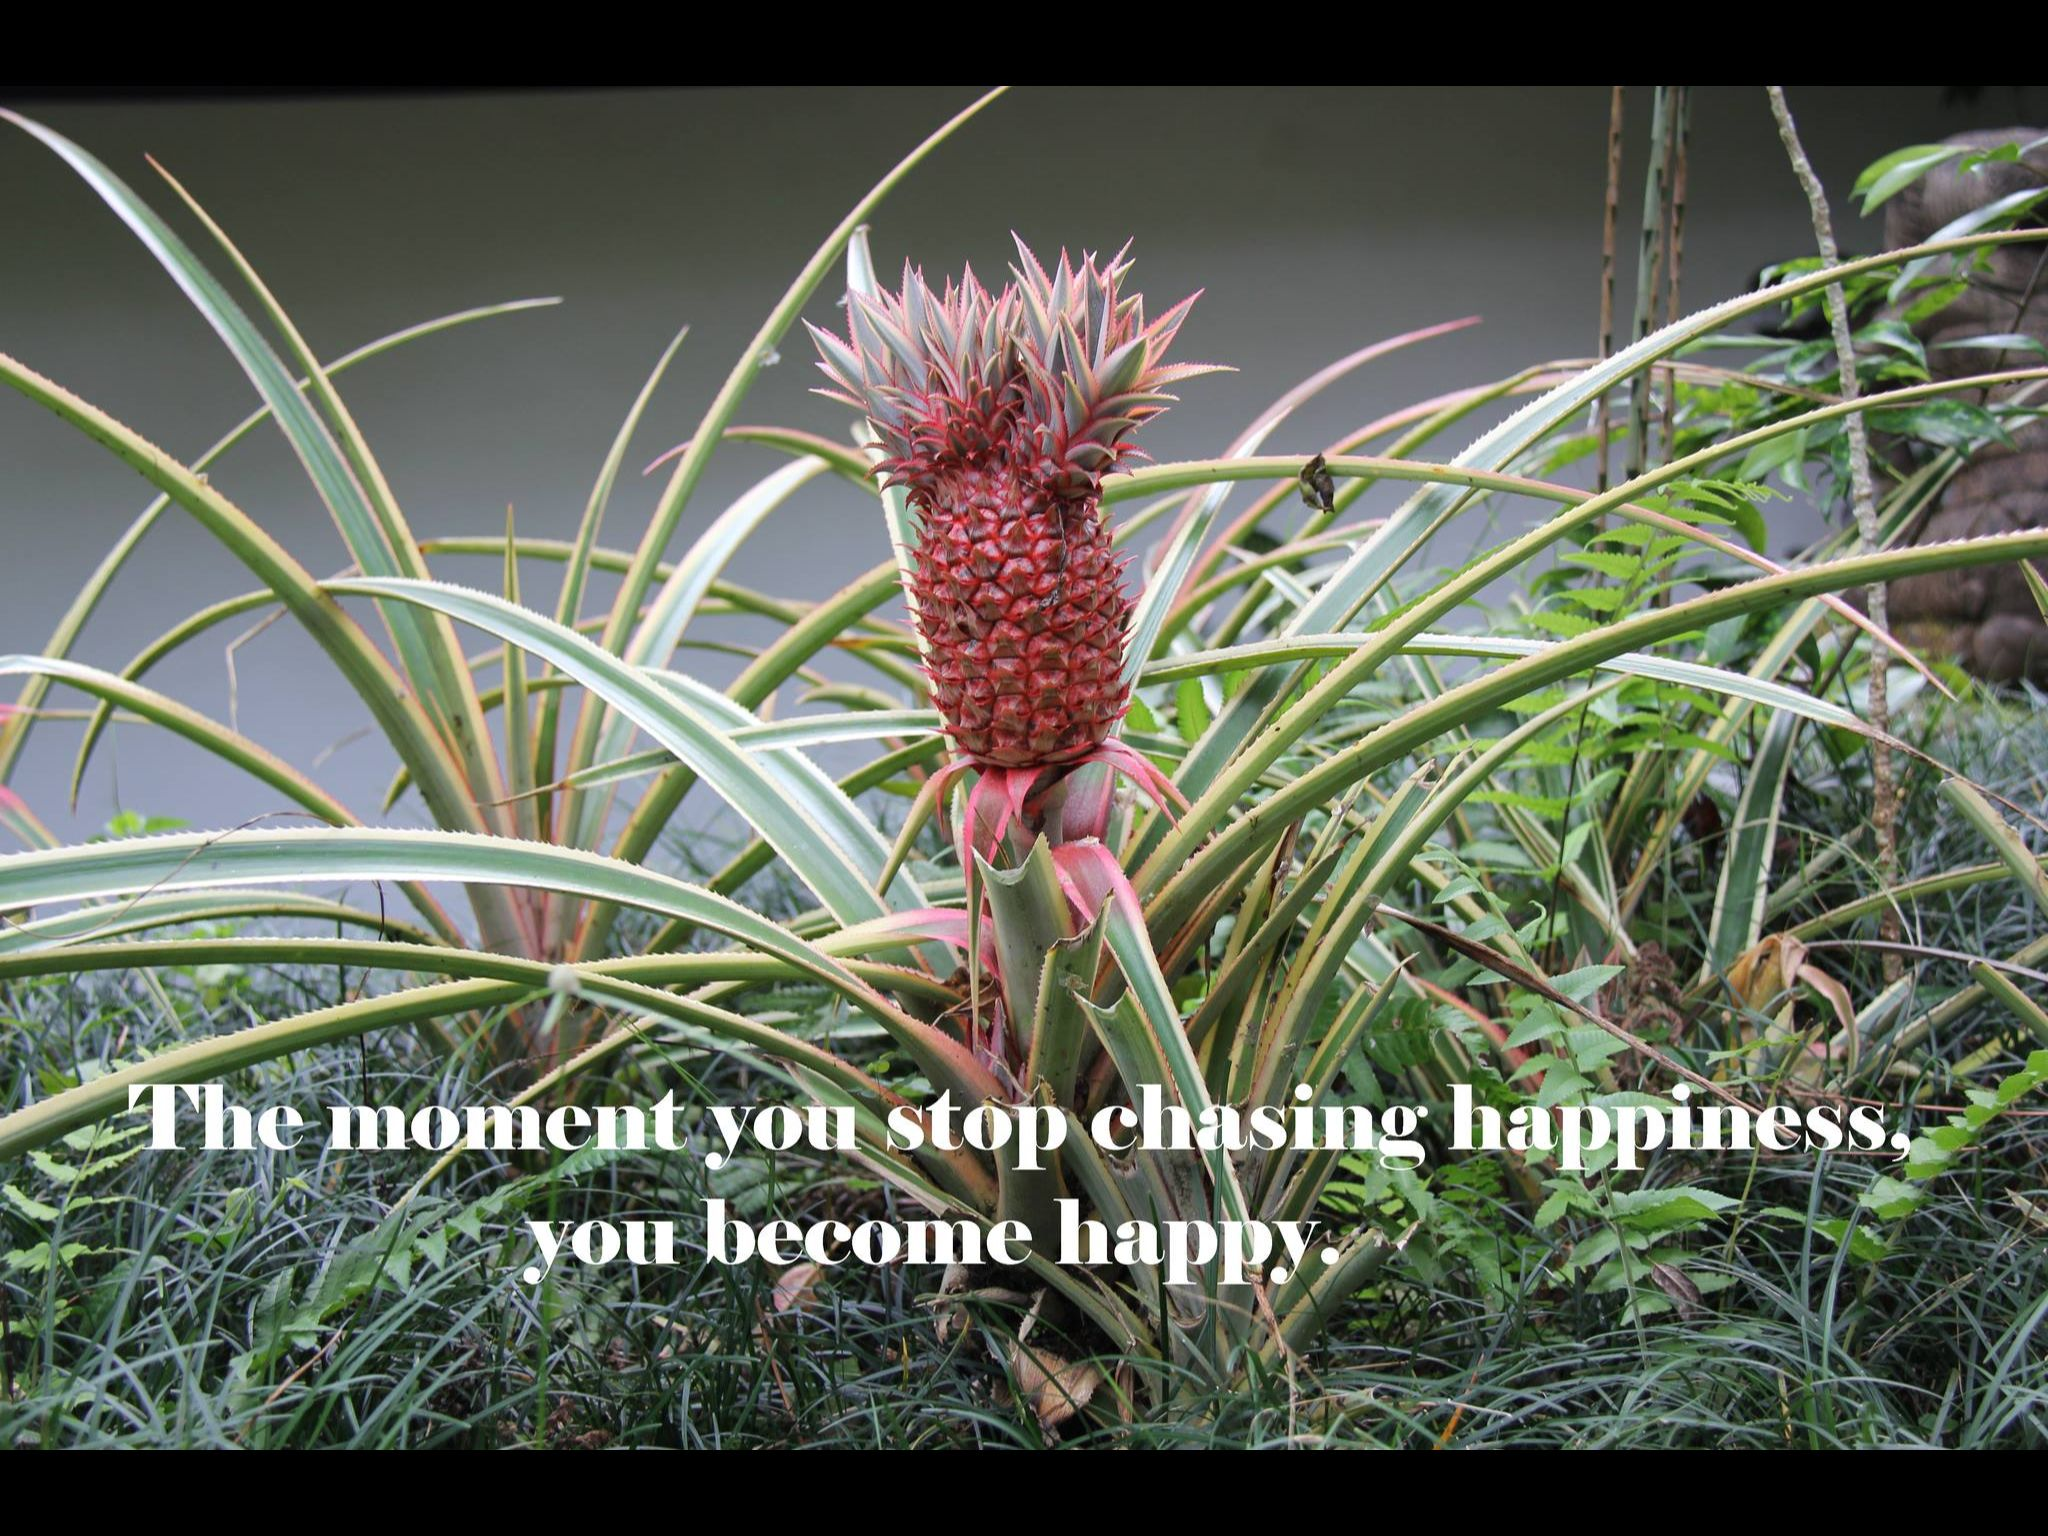 The moment you stop chasing happiness, you become happy.